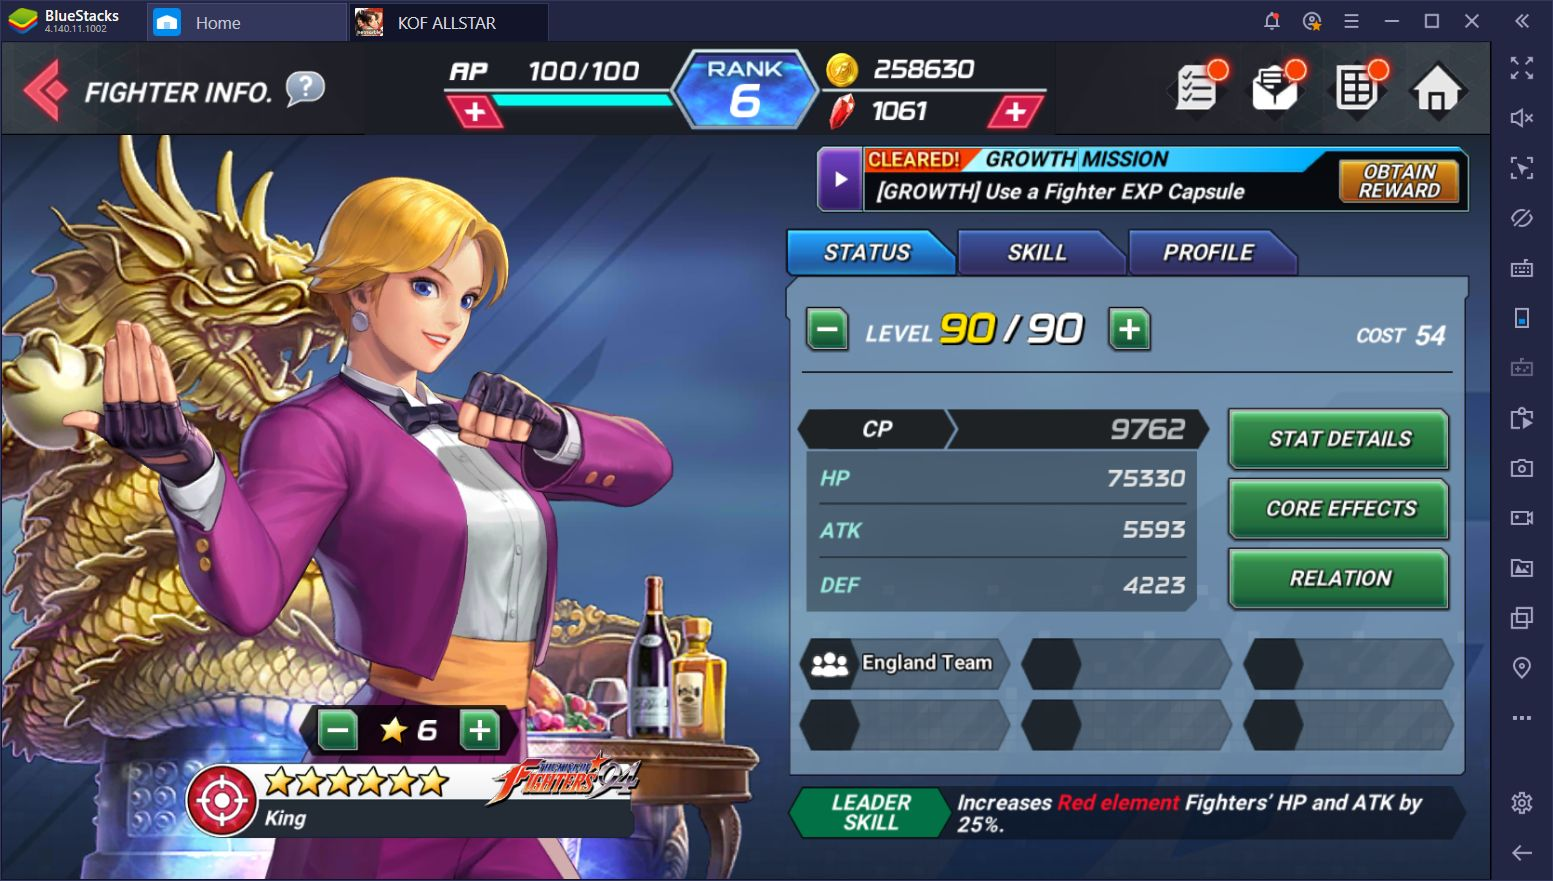 The Best Characters in King of Fighters ALLSTAR on PC